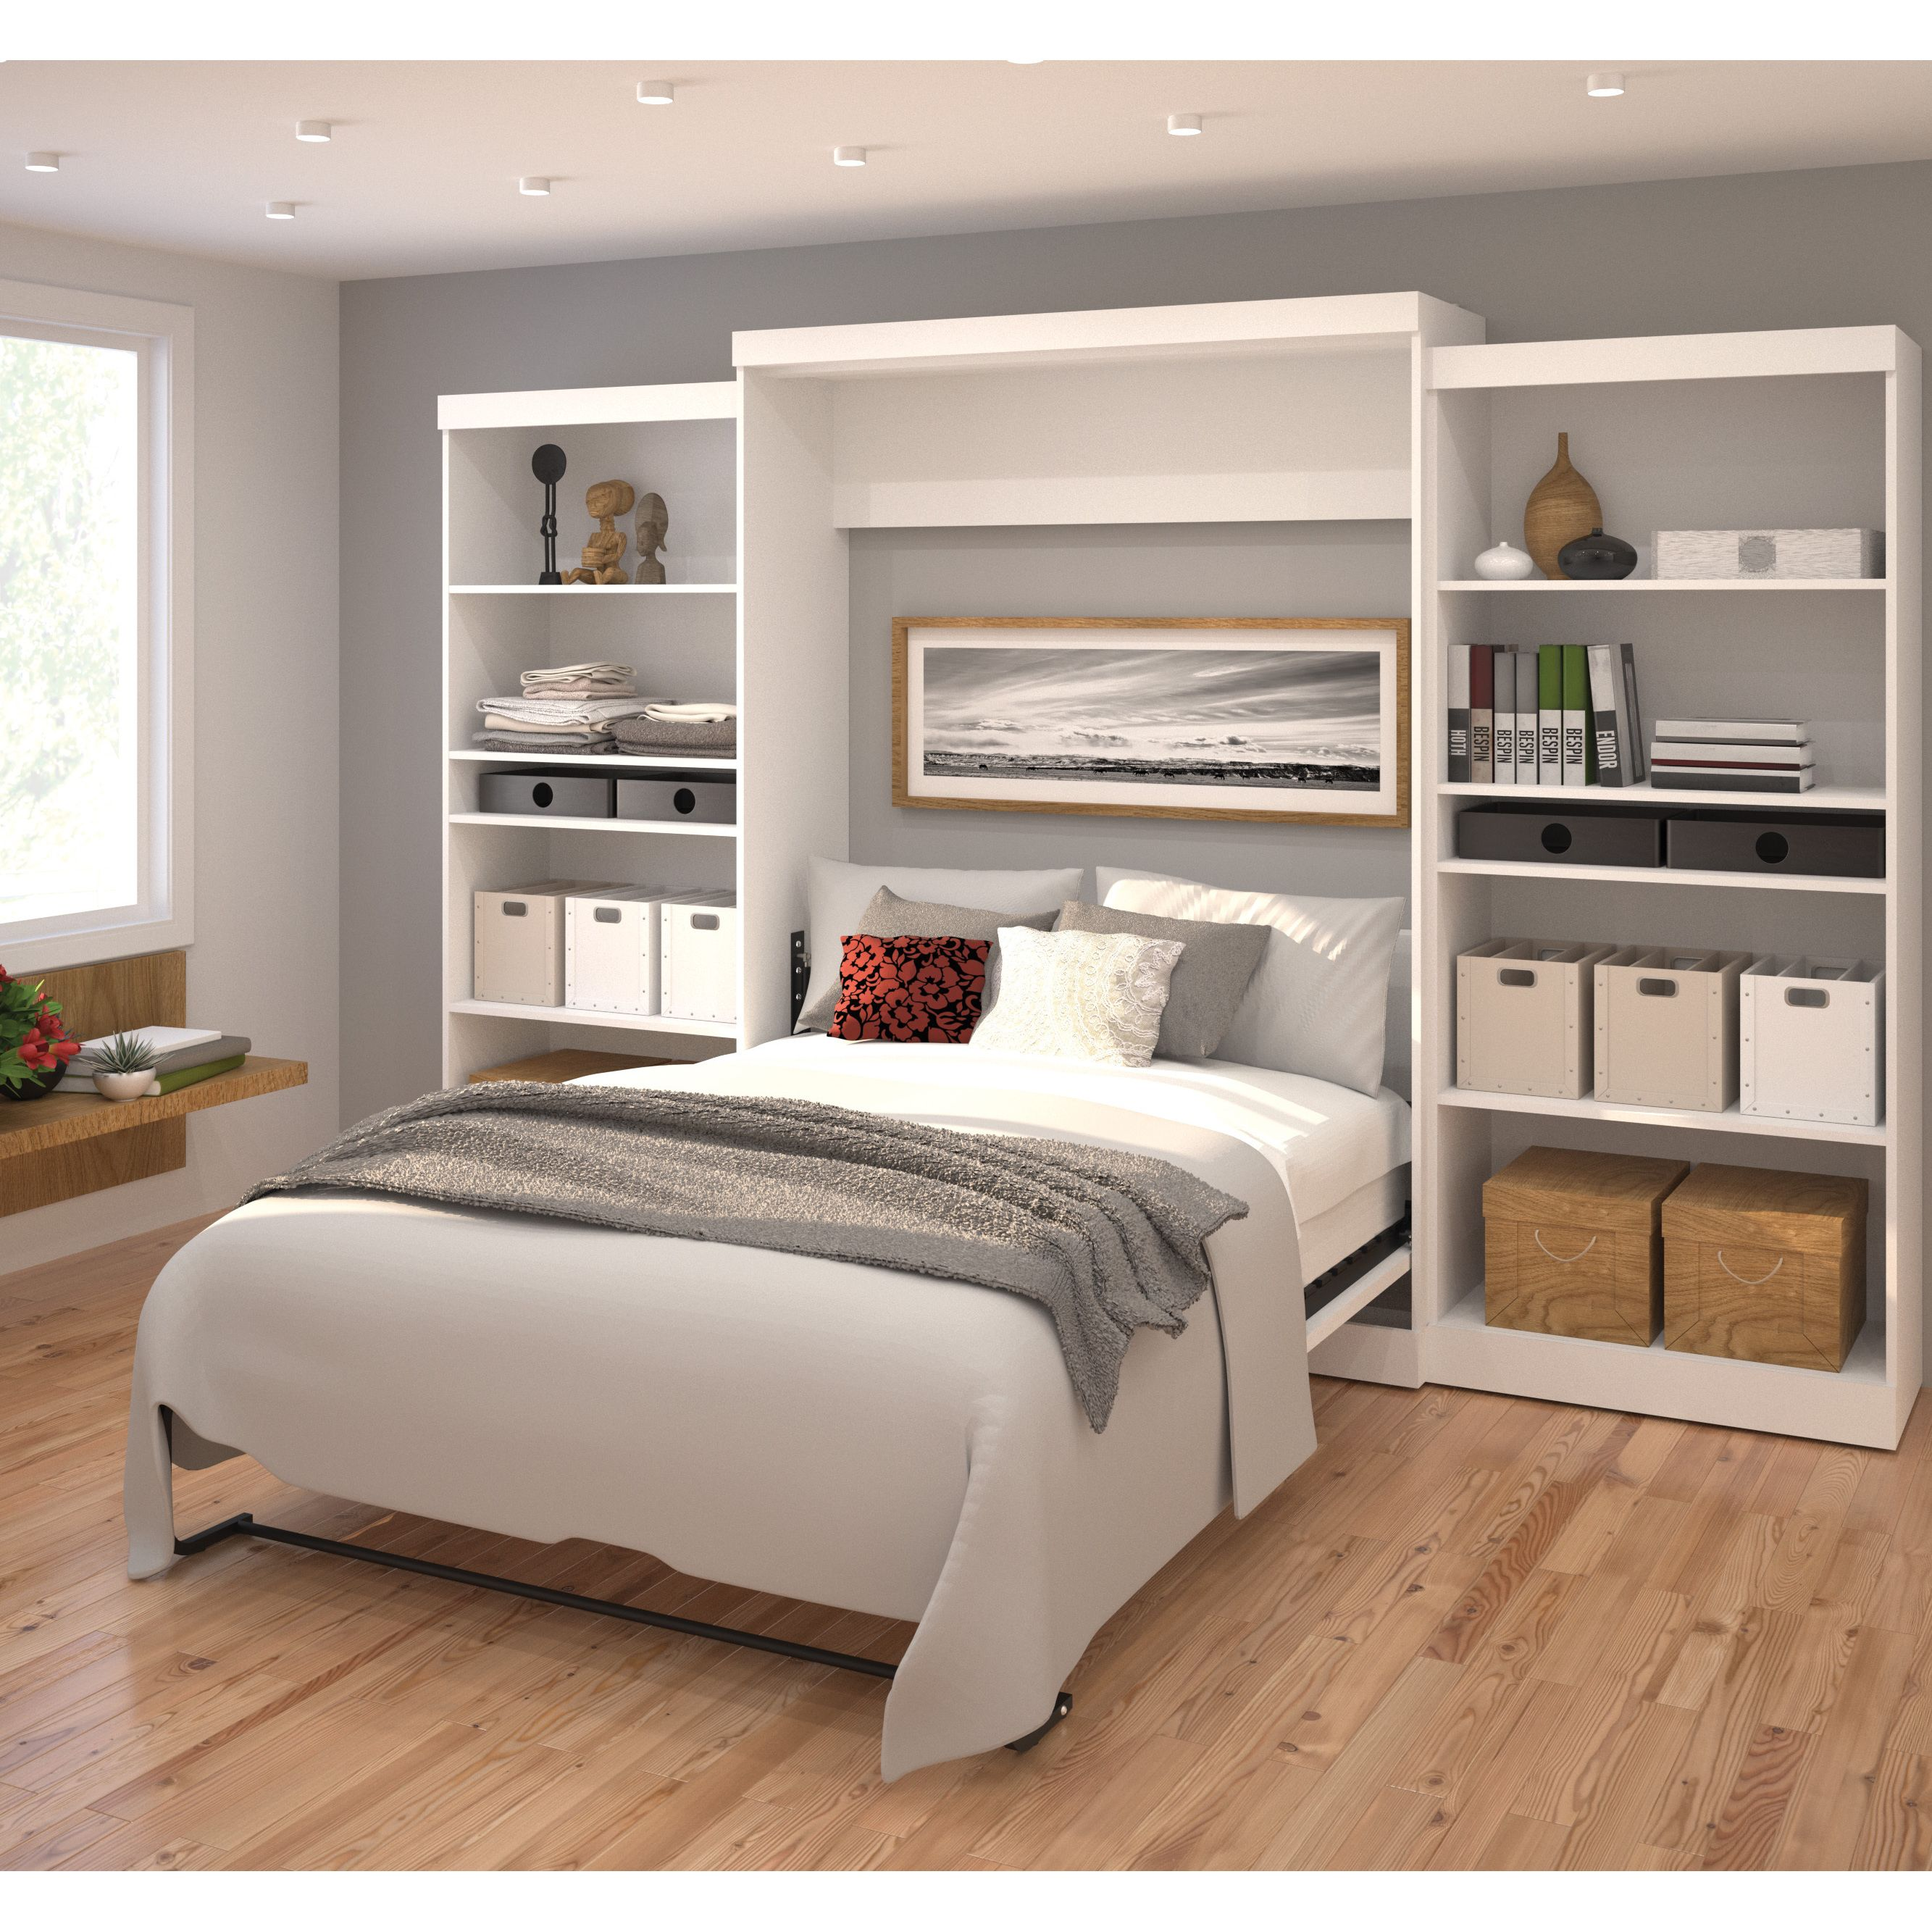 Pur By Bestar 136 Queen Wall Bed Kit White Murphy Beds